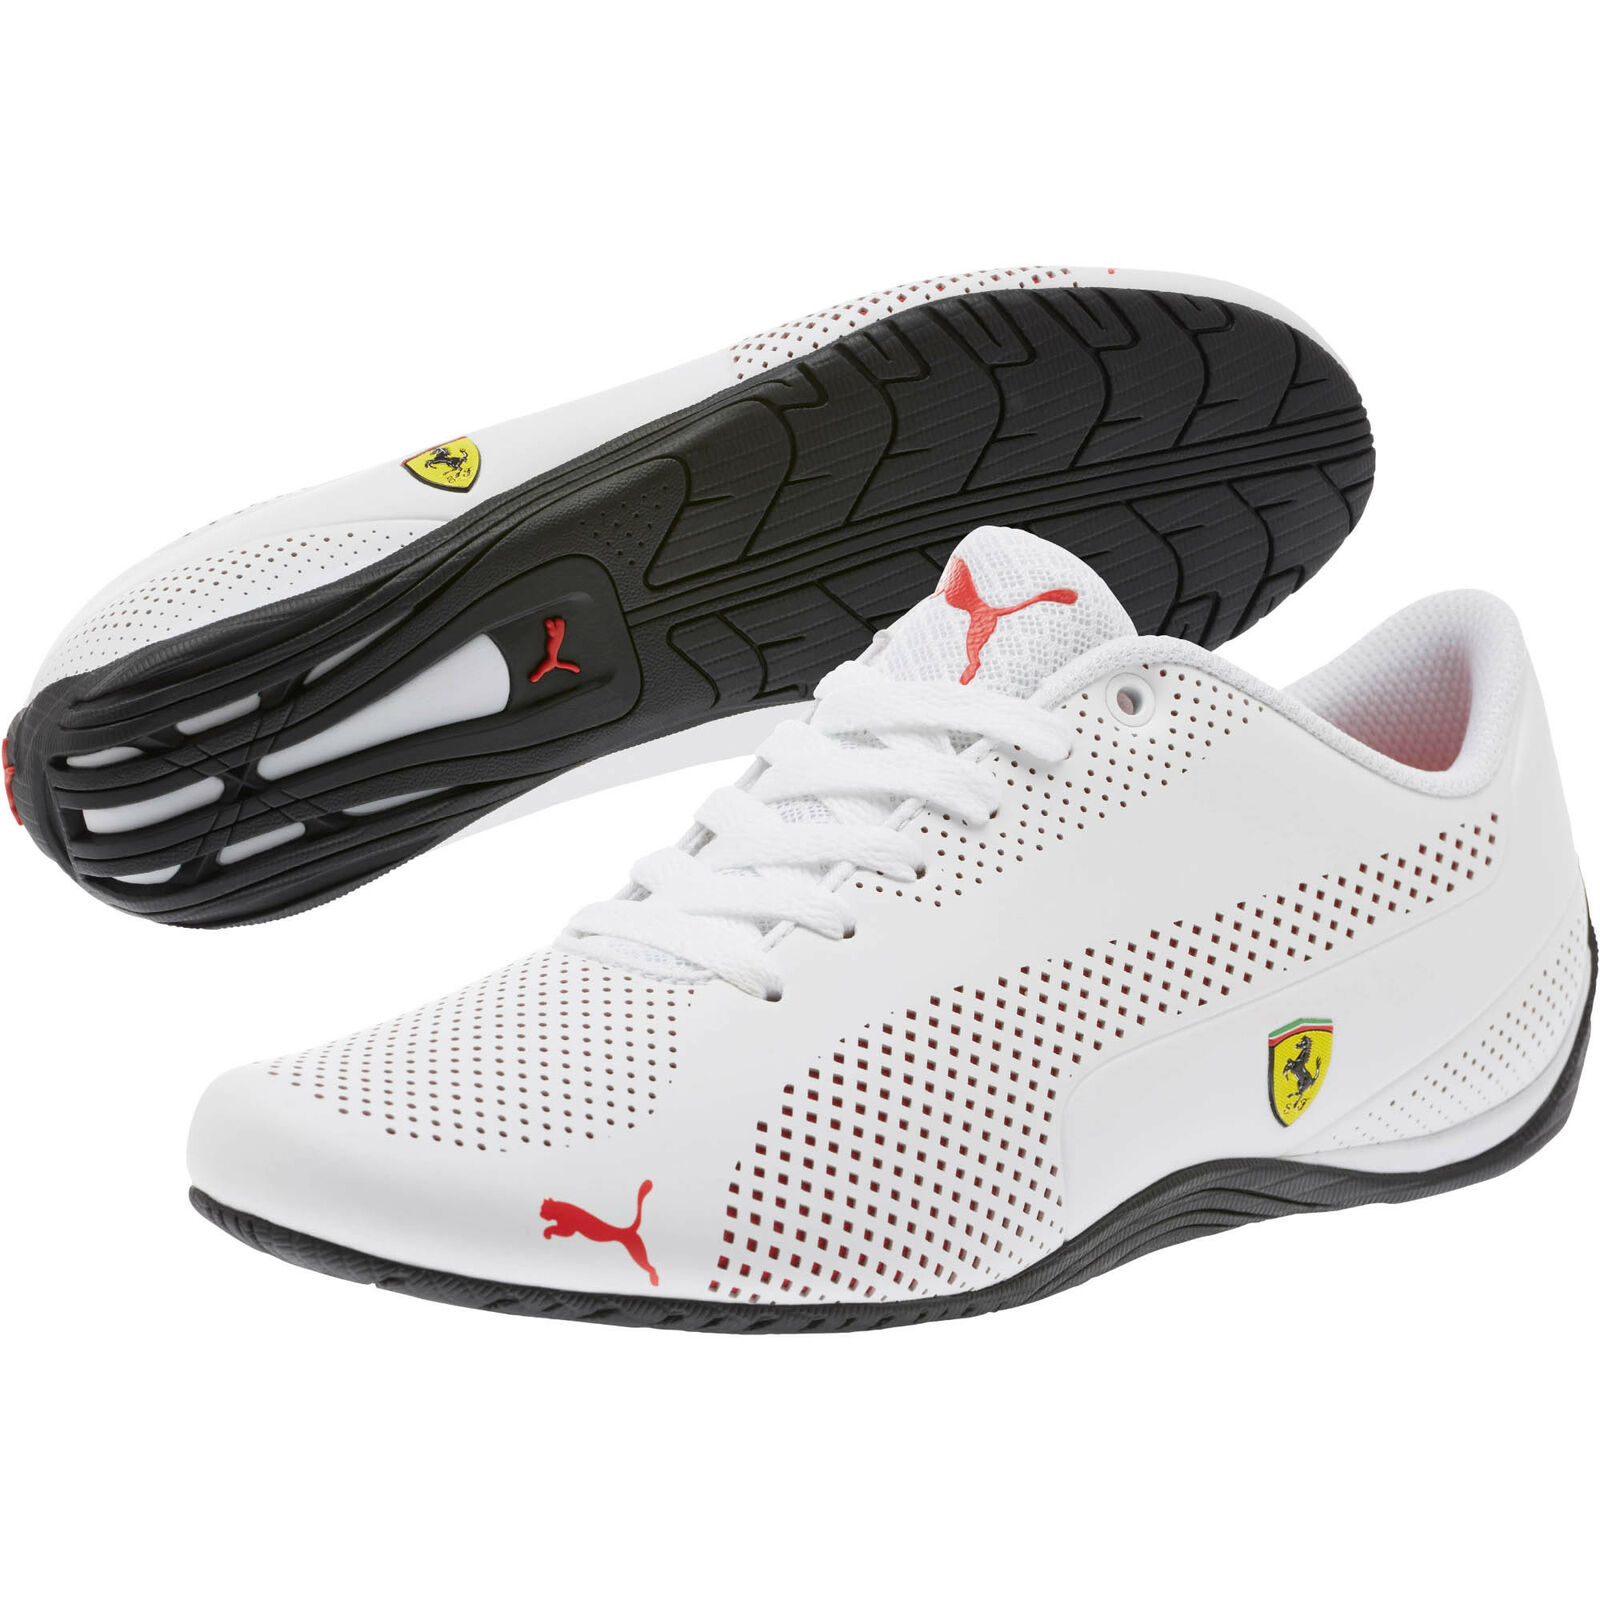 PUMA Scuderia Ferrari Drift Cat 5 Ultra Shoes Men Shoe Auto